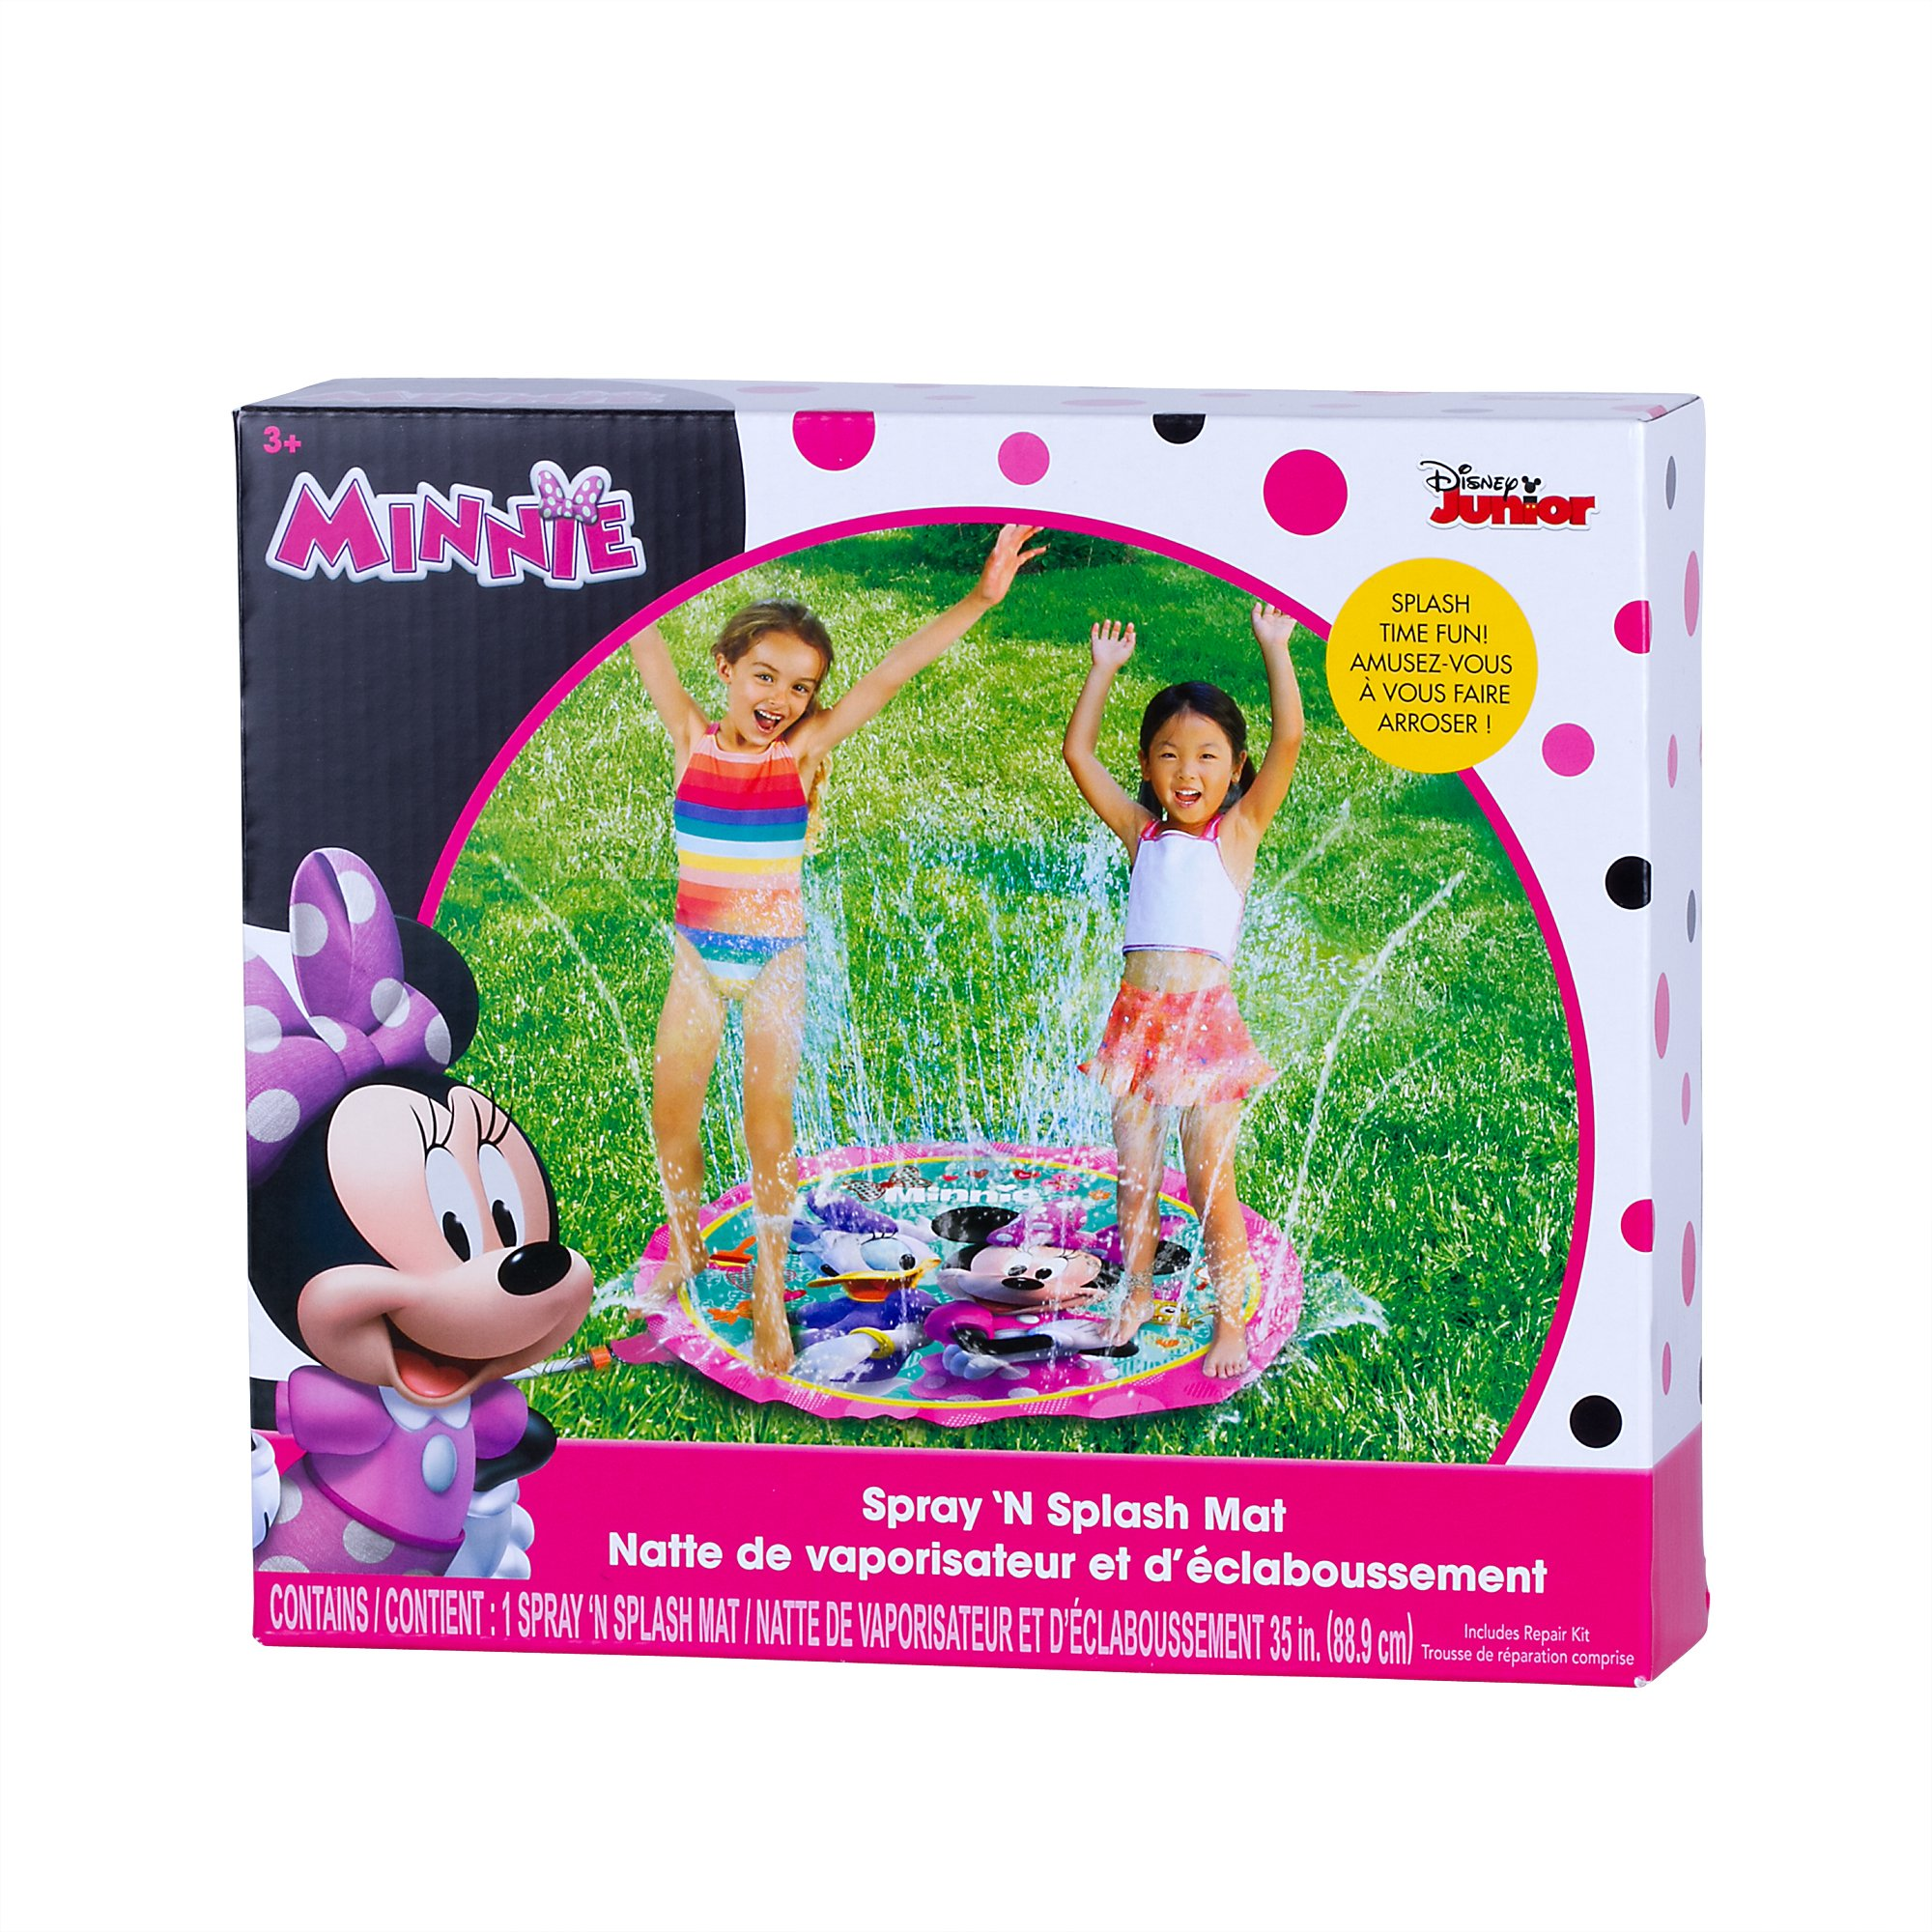 NENUKA Disney Minnie Mouse Water Sprinkler Spray Mat (Minnie Mouse)